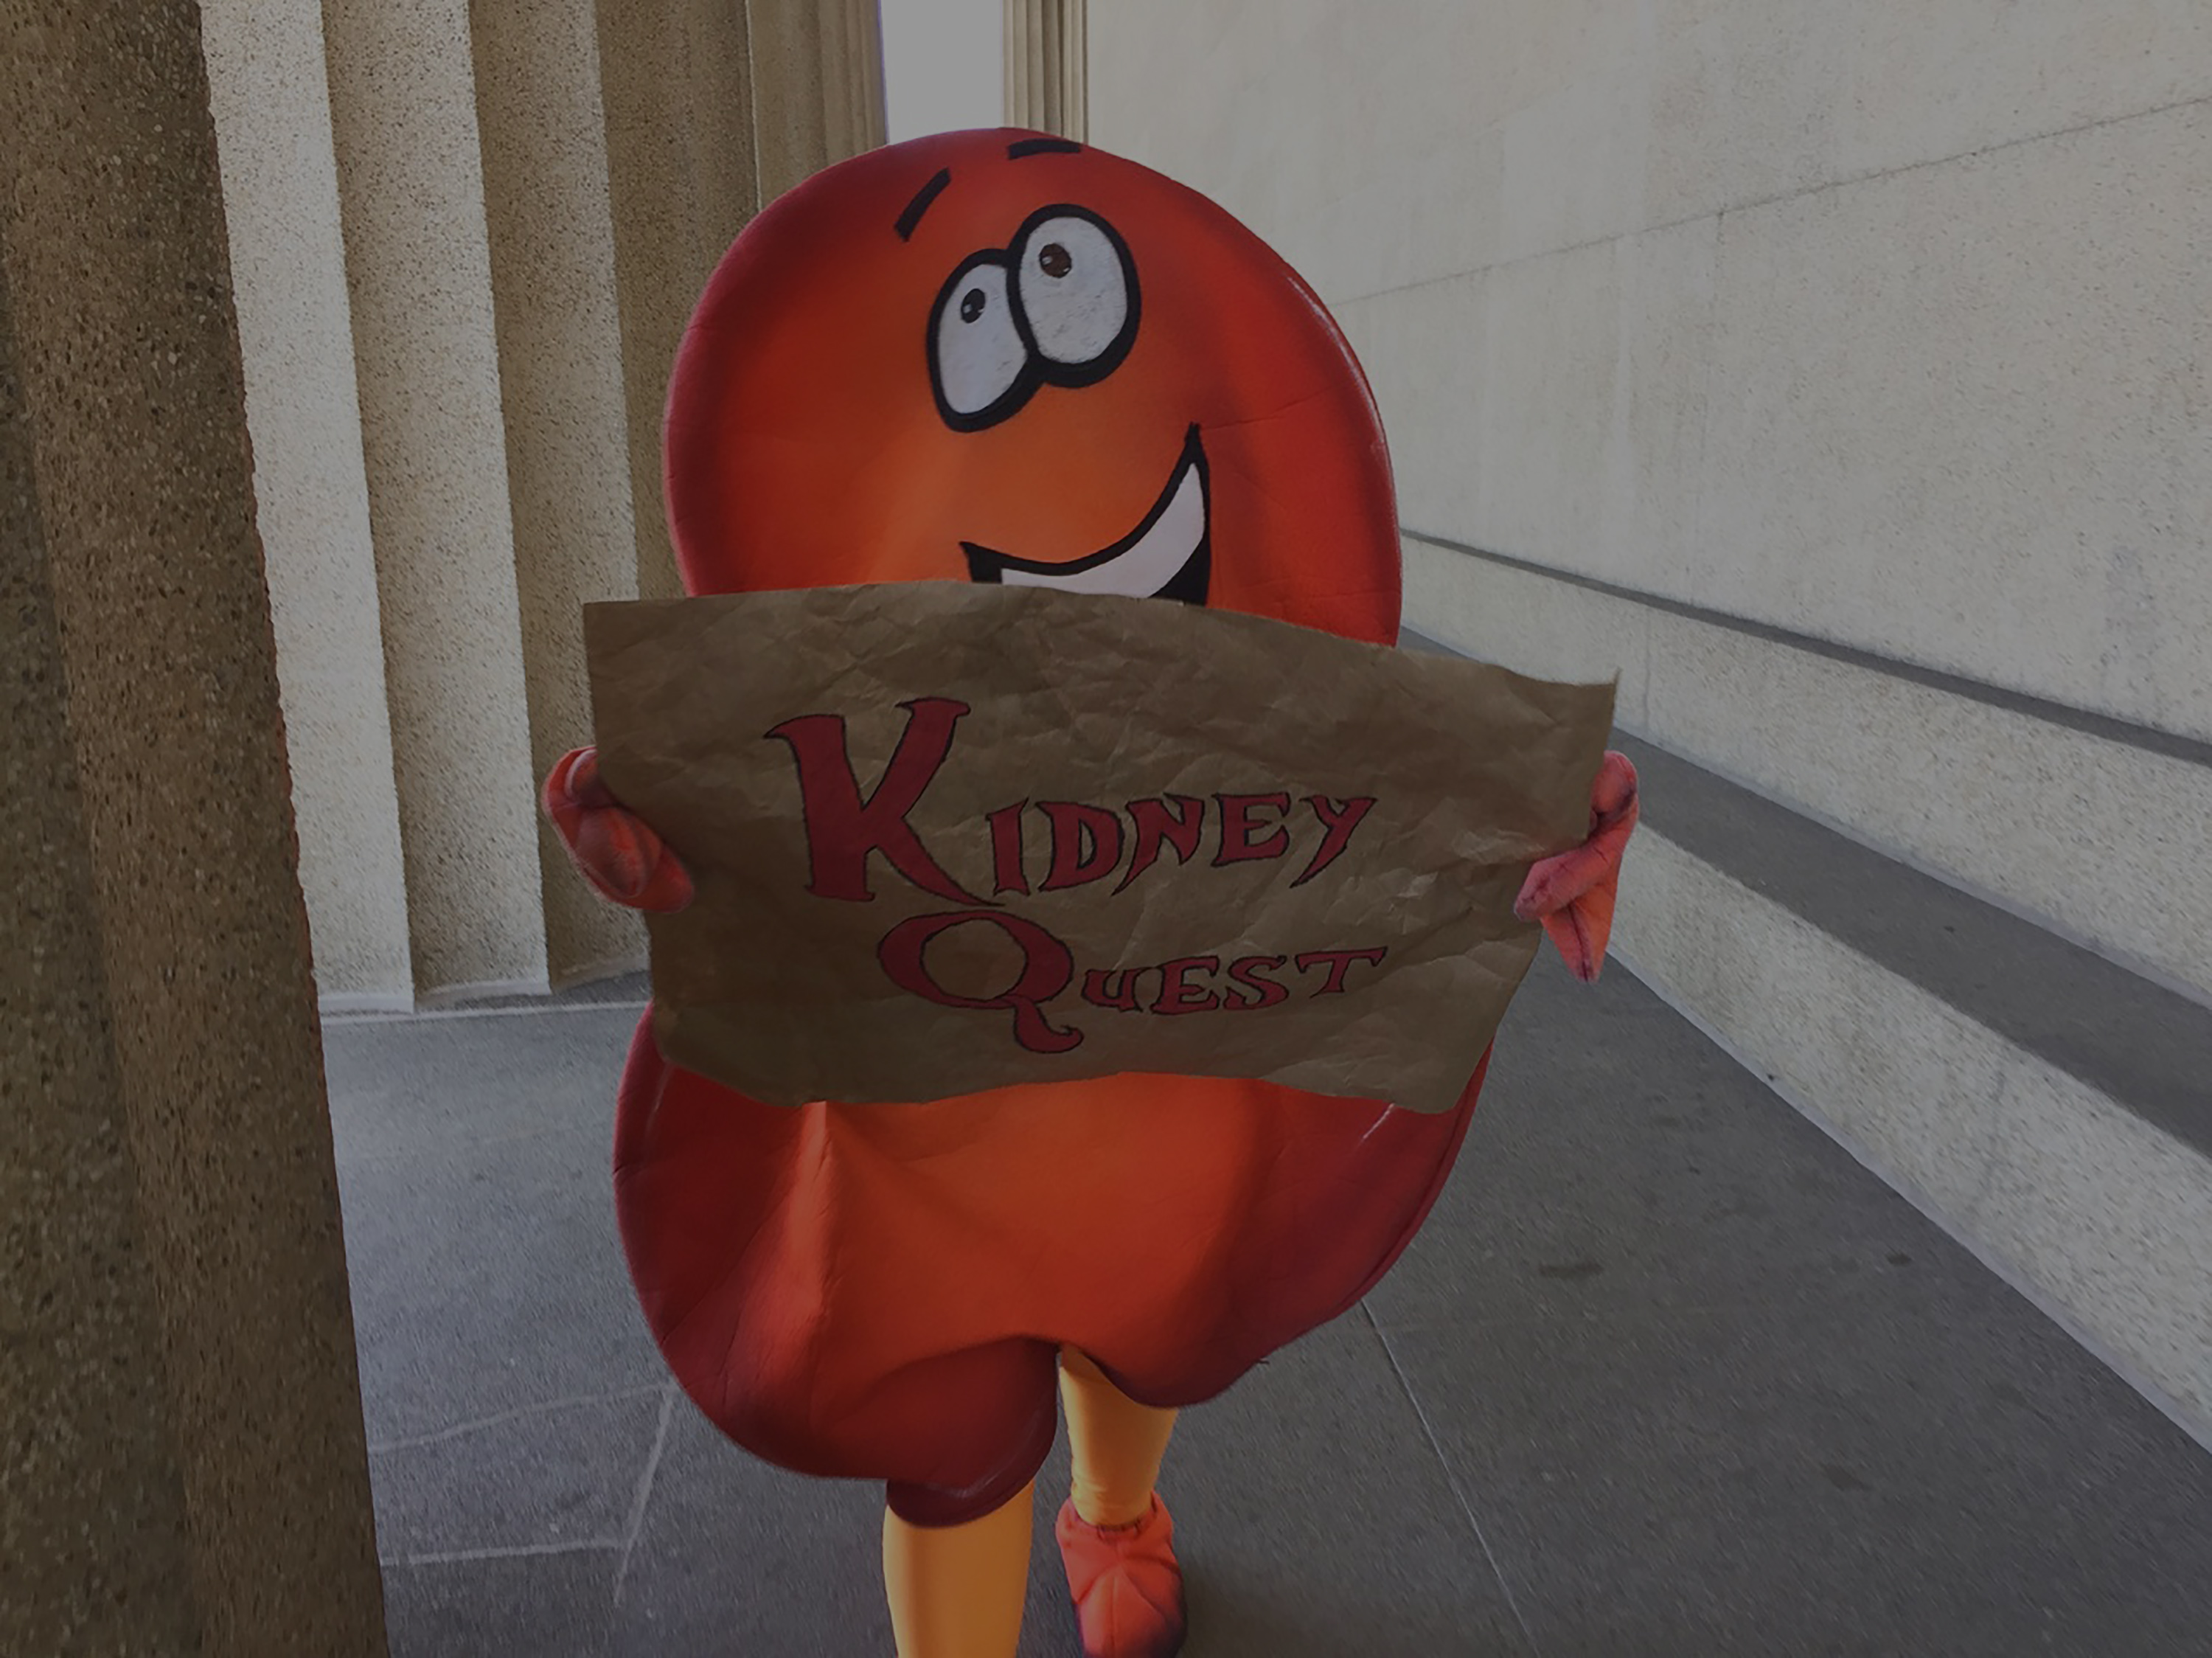 Are you ready to embark on a quest for your best kidney care?